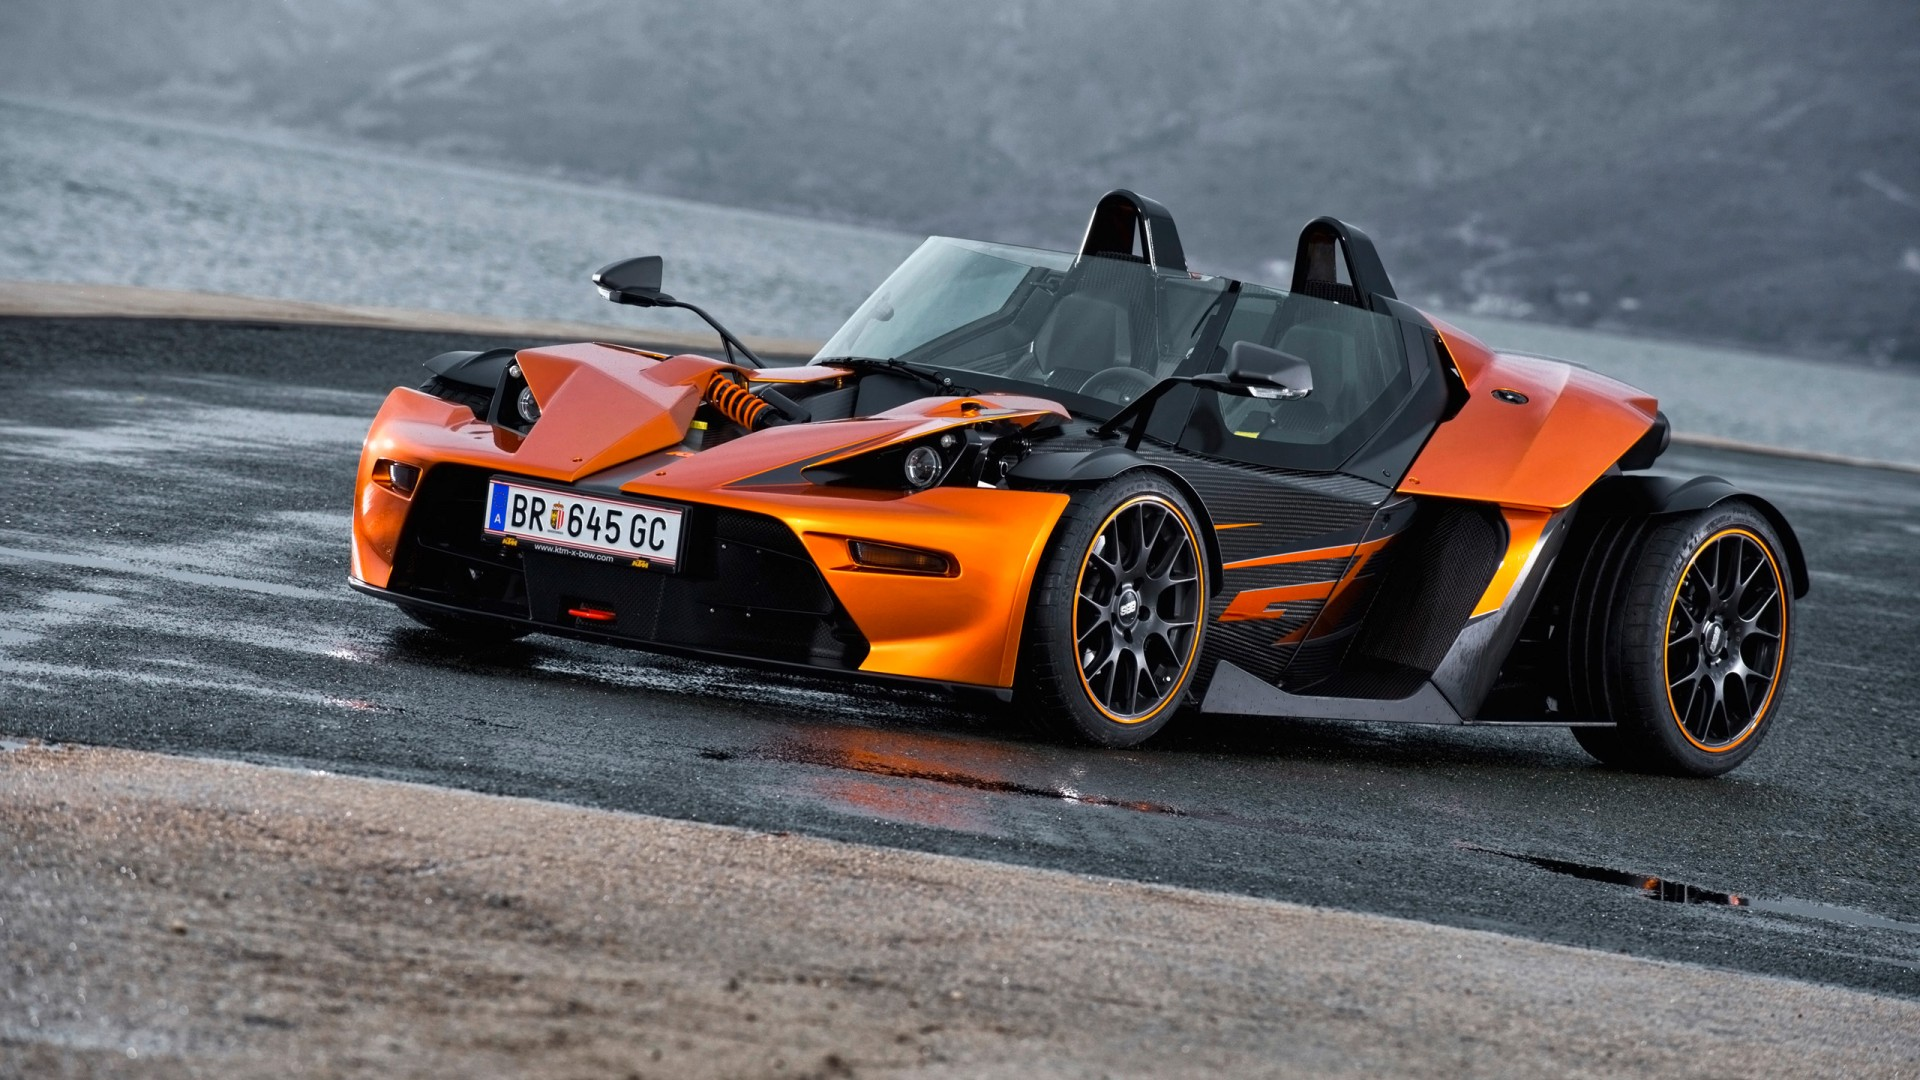 2014 ktm x bow gt wallpaper hd car wallpapers id 4149 - X bow ktm ...